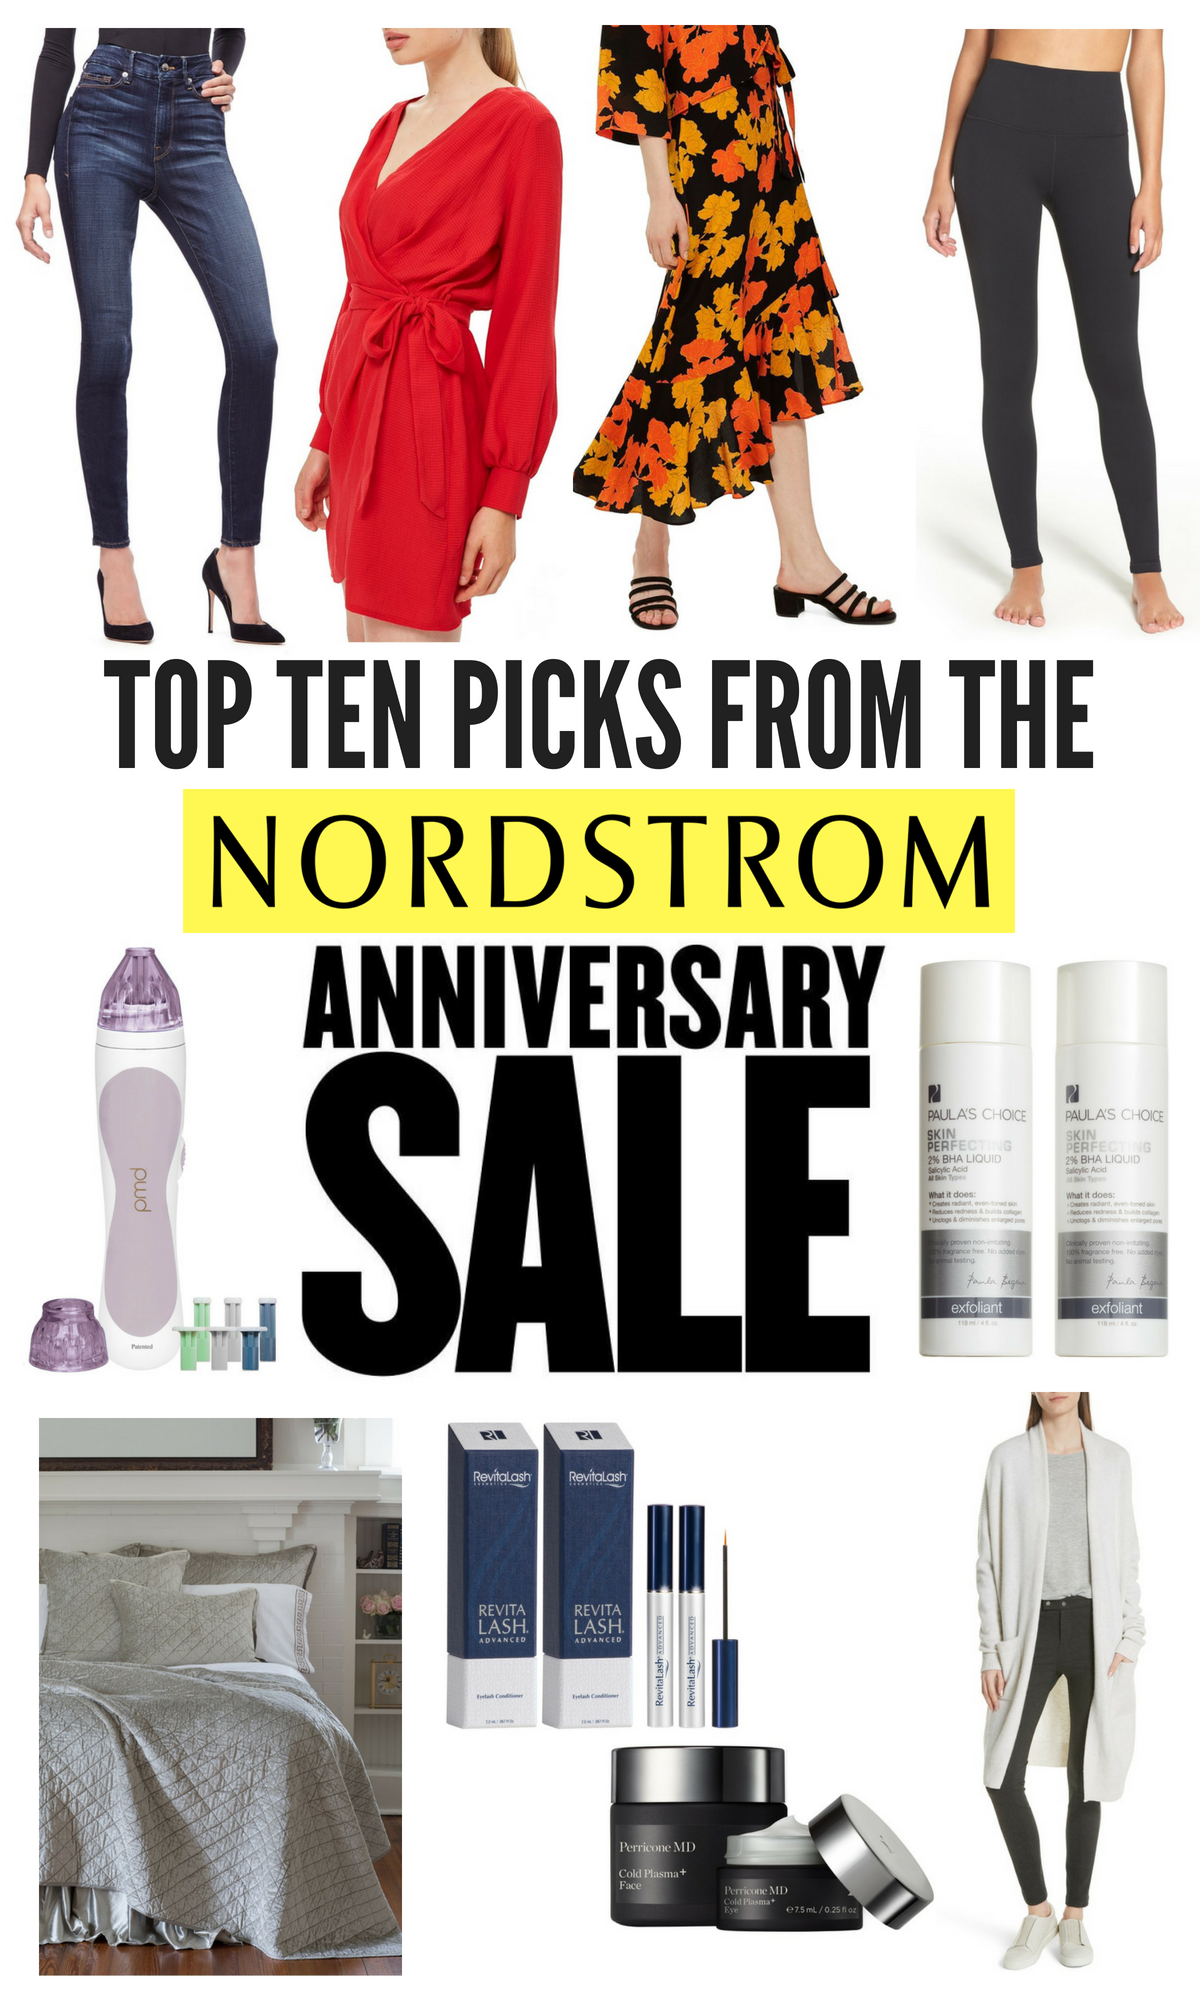 My Top Ten Picks from the Nordstrom Anniversary Sale + a $400 Giveaway